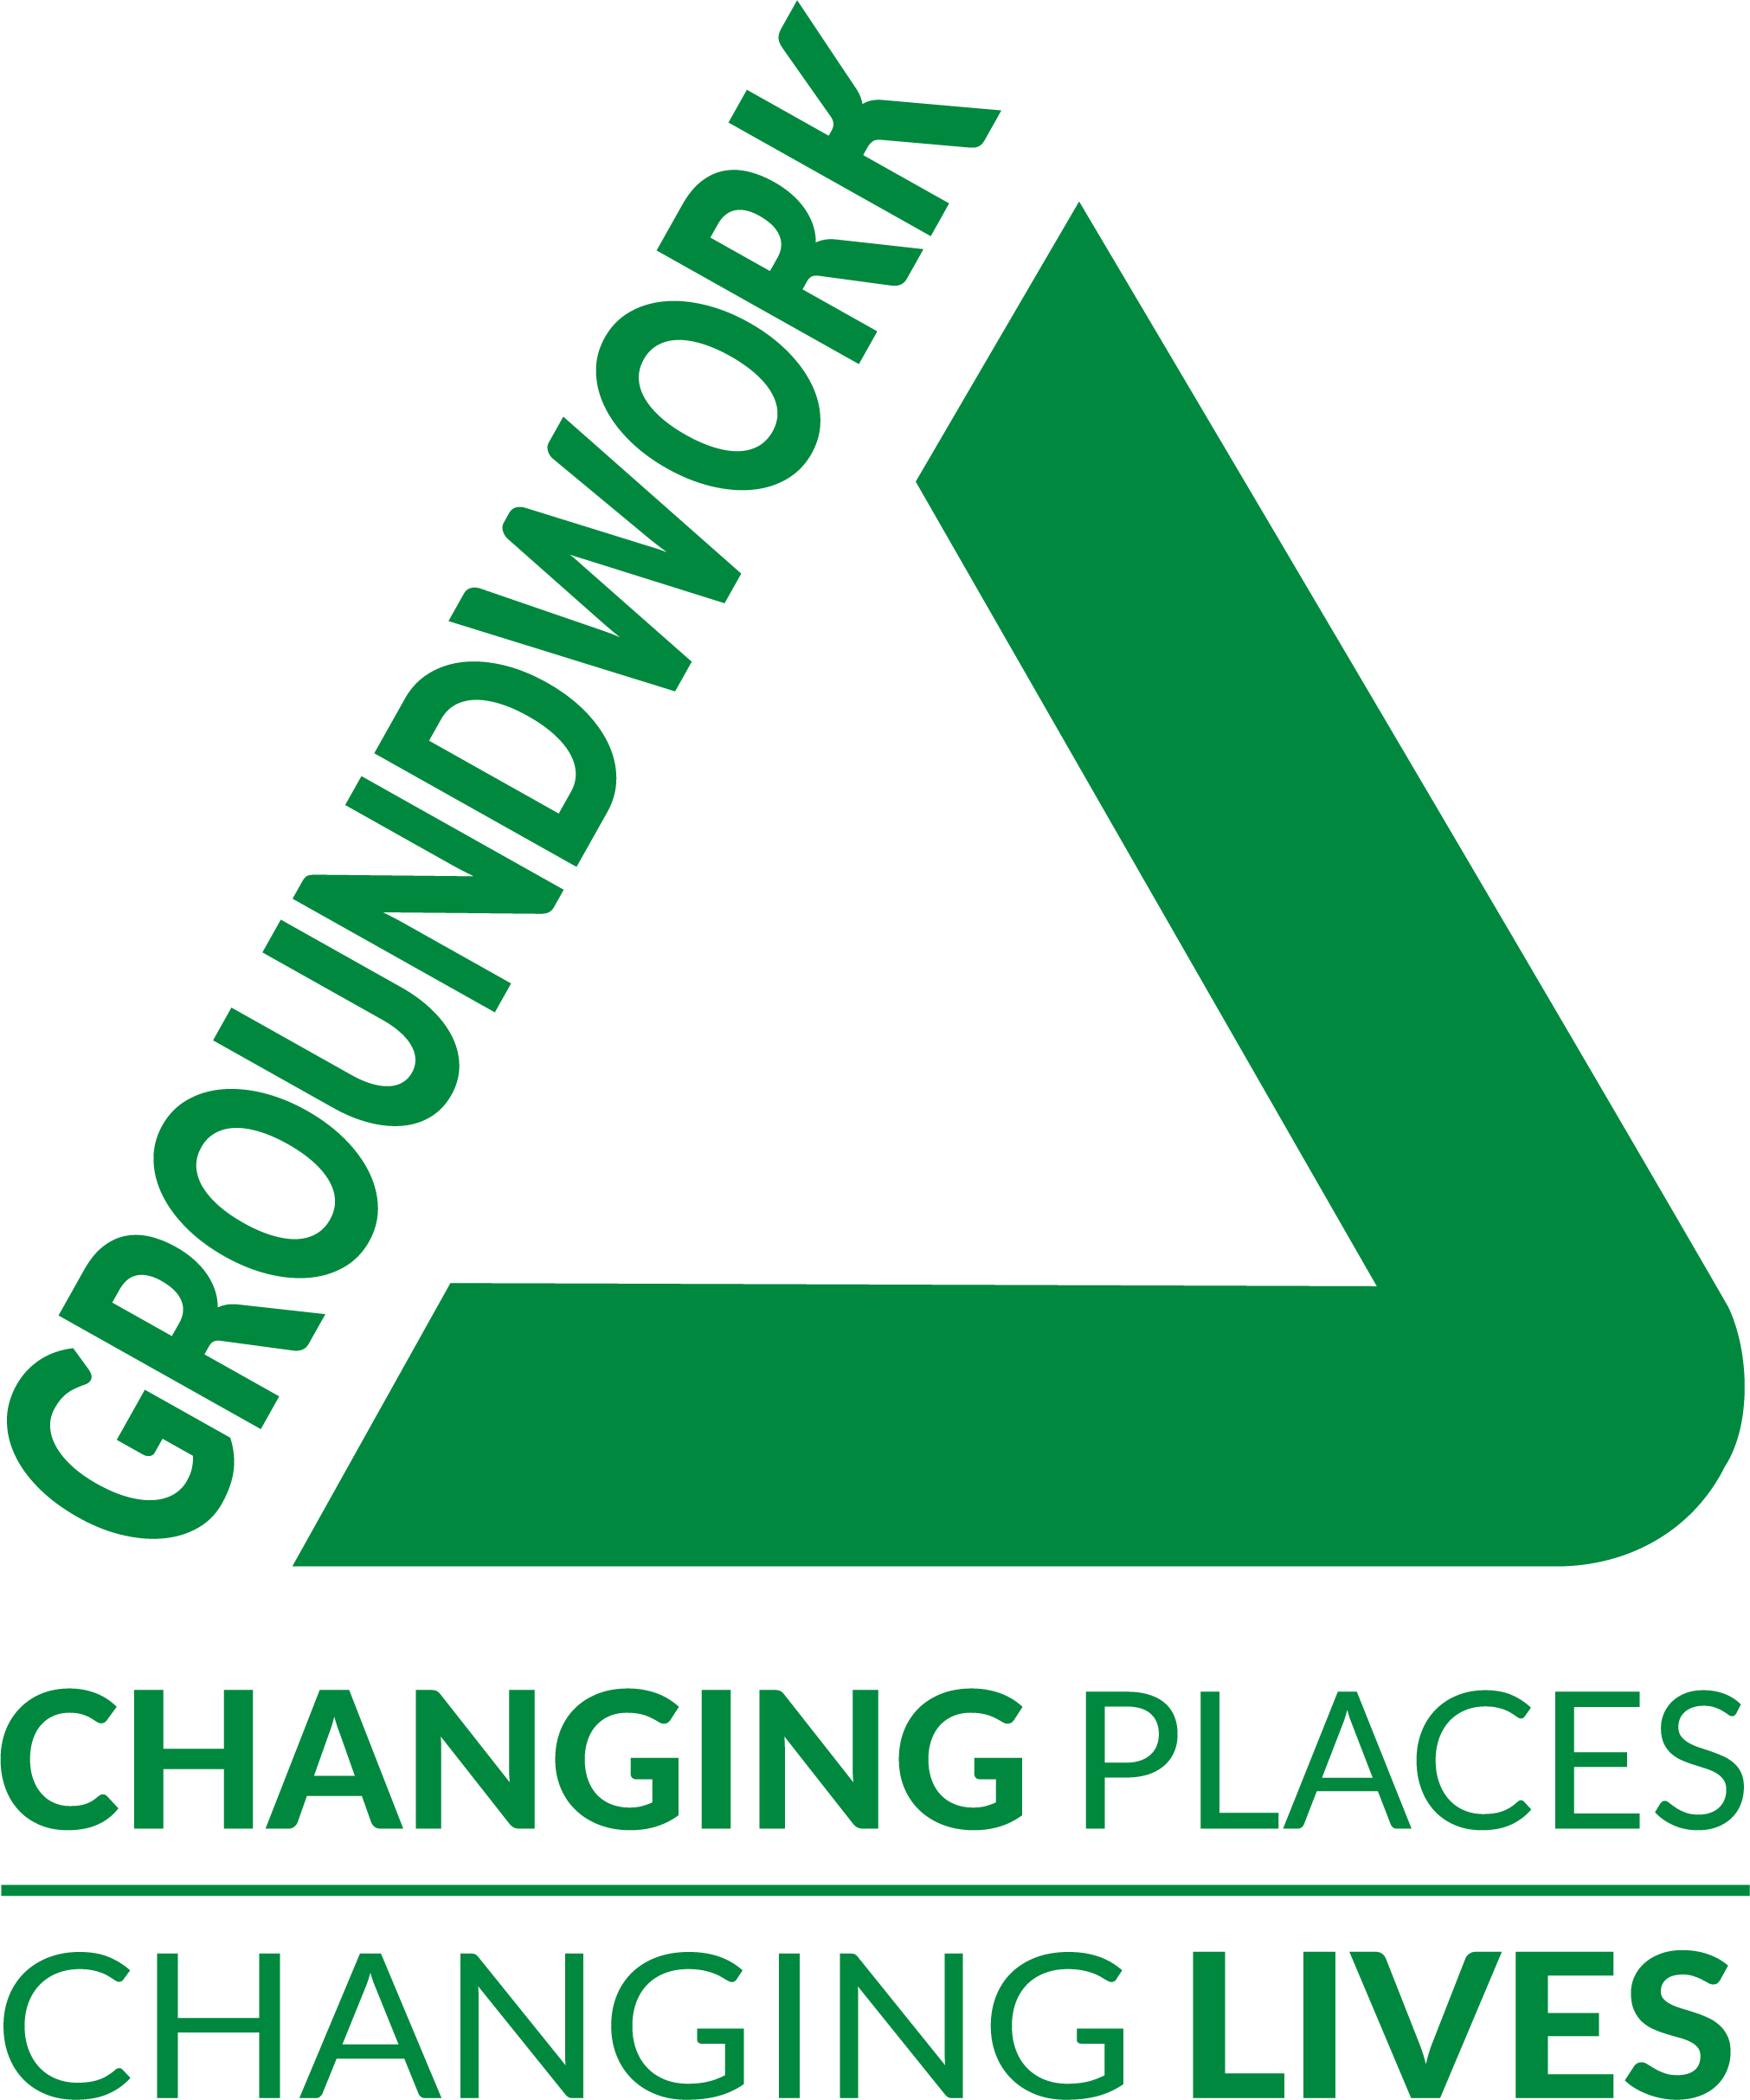 Ground work Logo